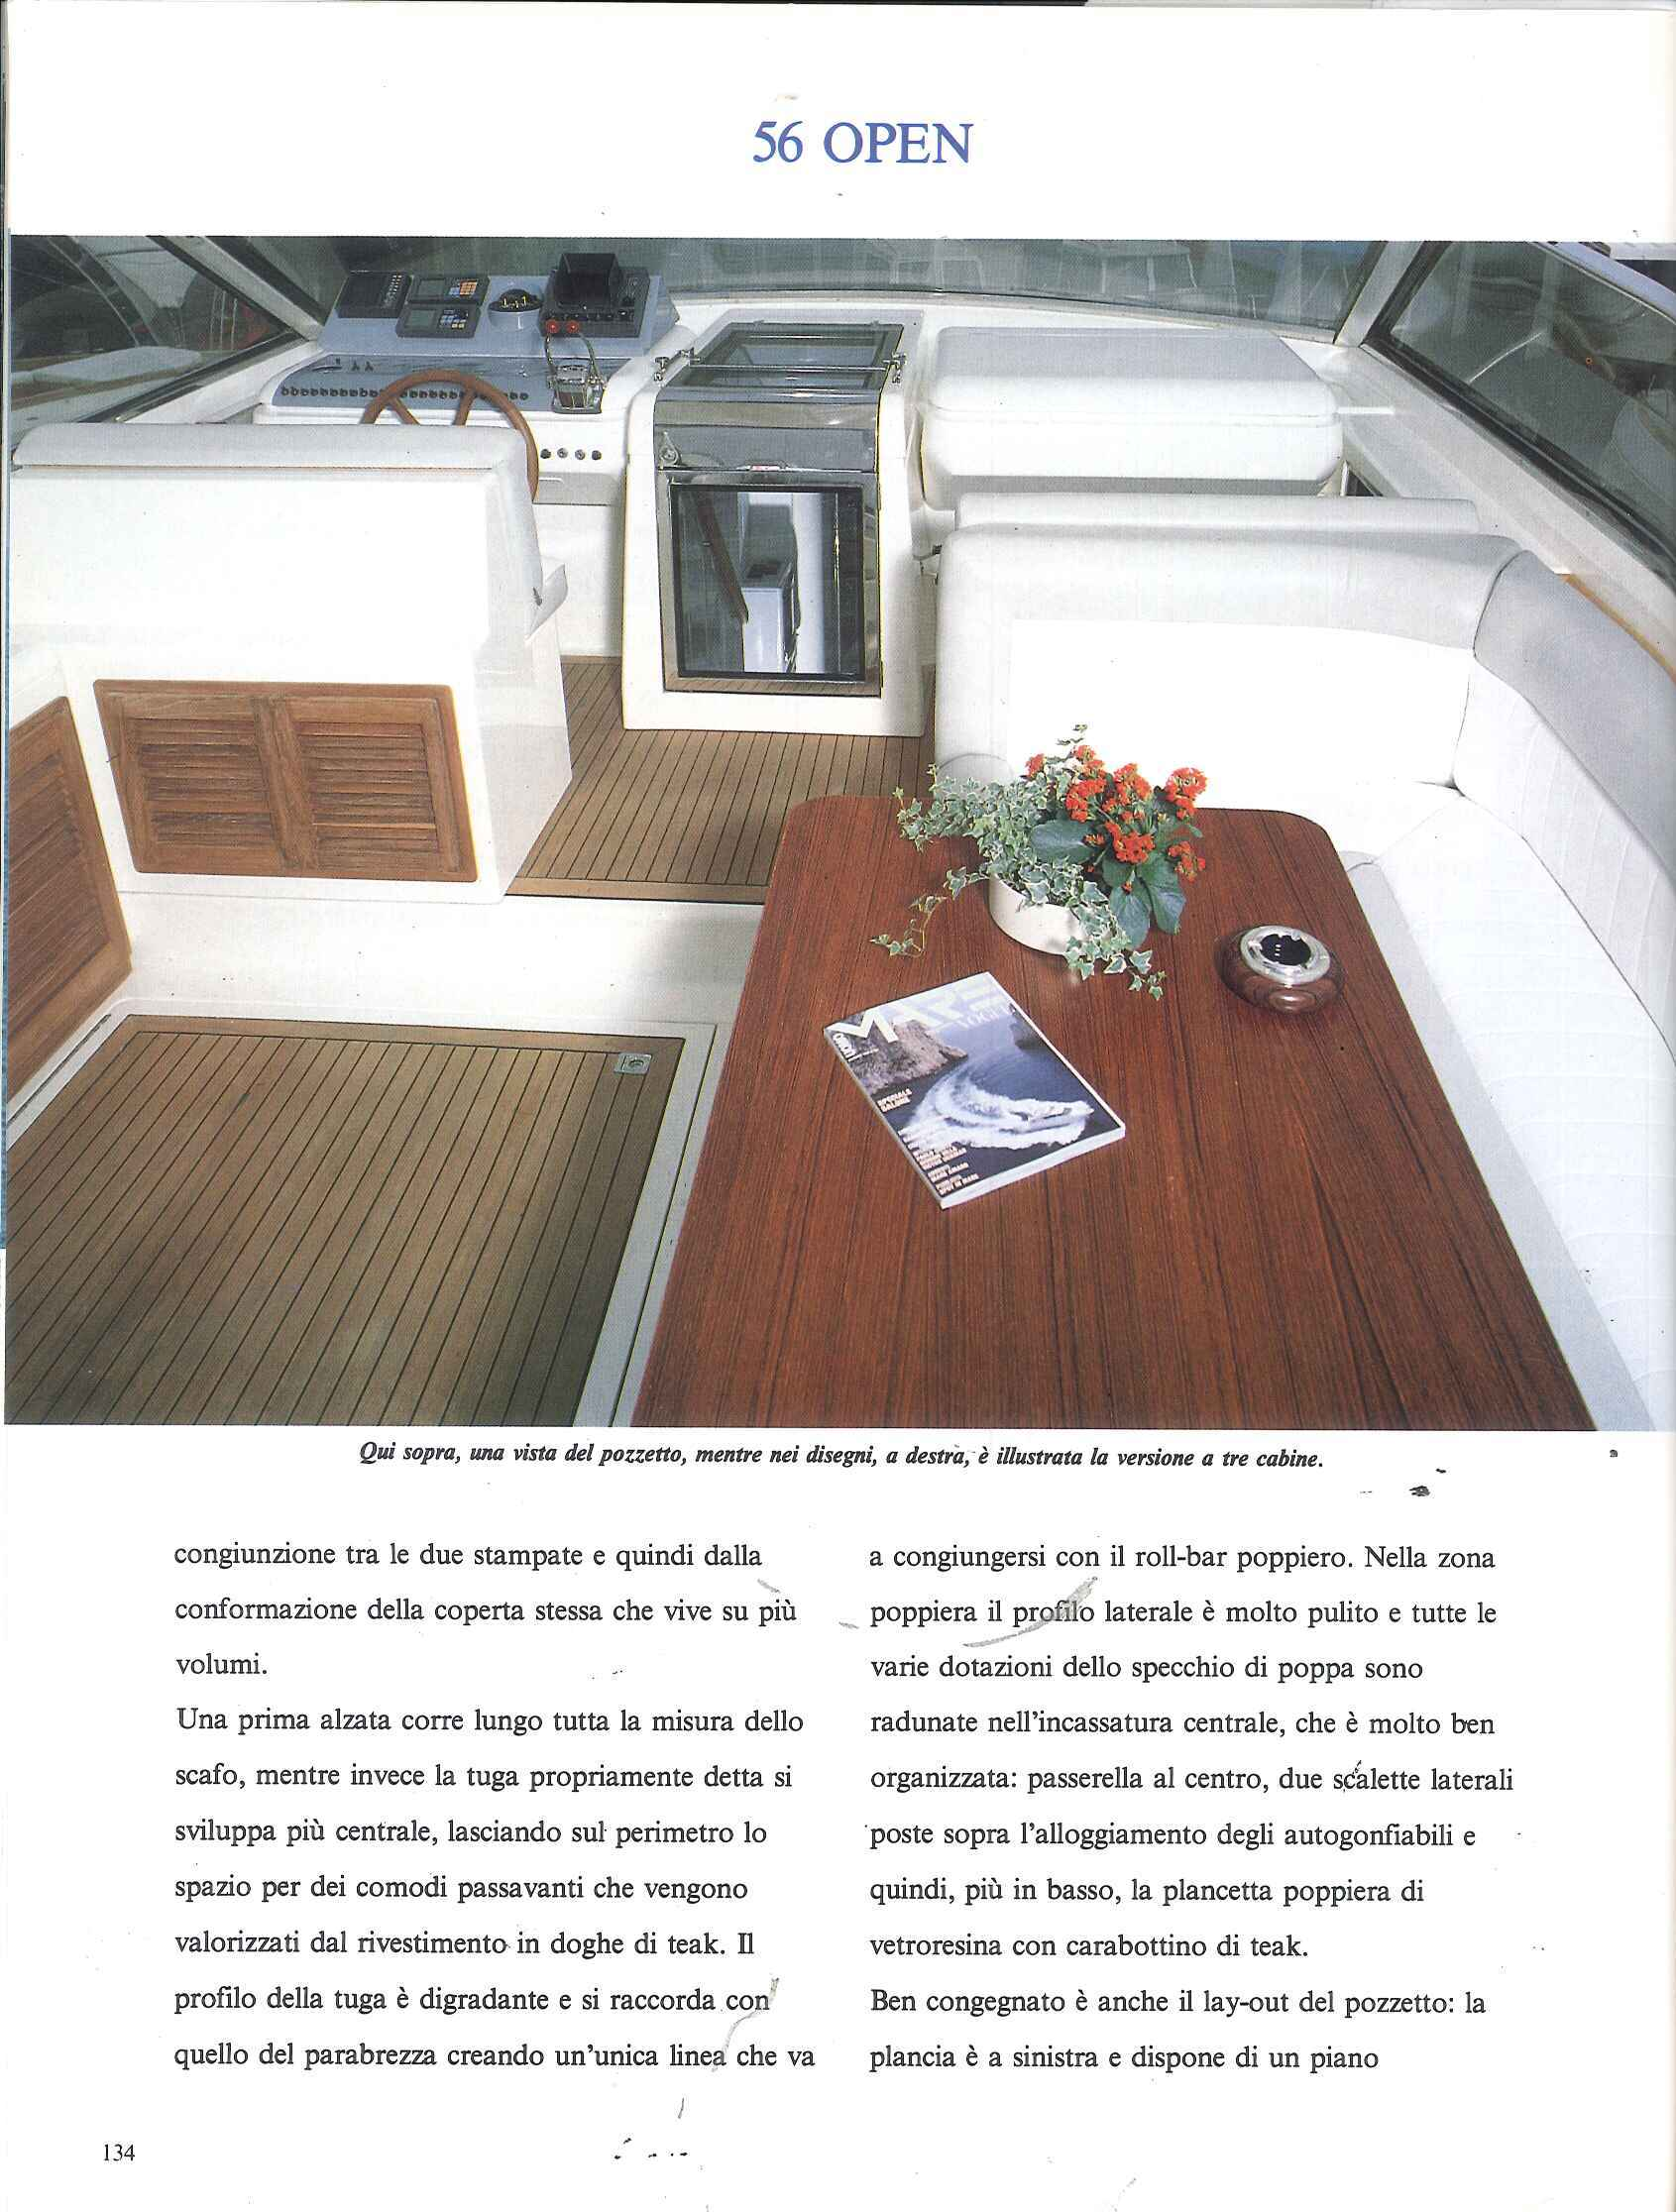 1989 04 PRESS DUAL CRAFT 56 OPEN UOMO MARE 129 (03).jpg